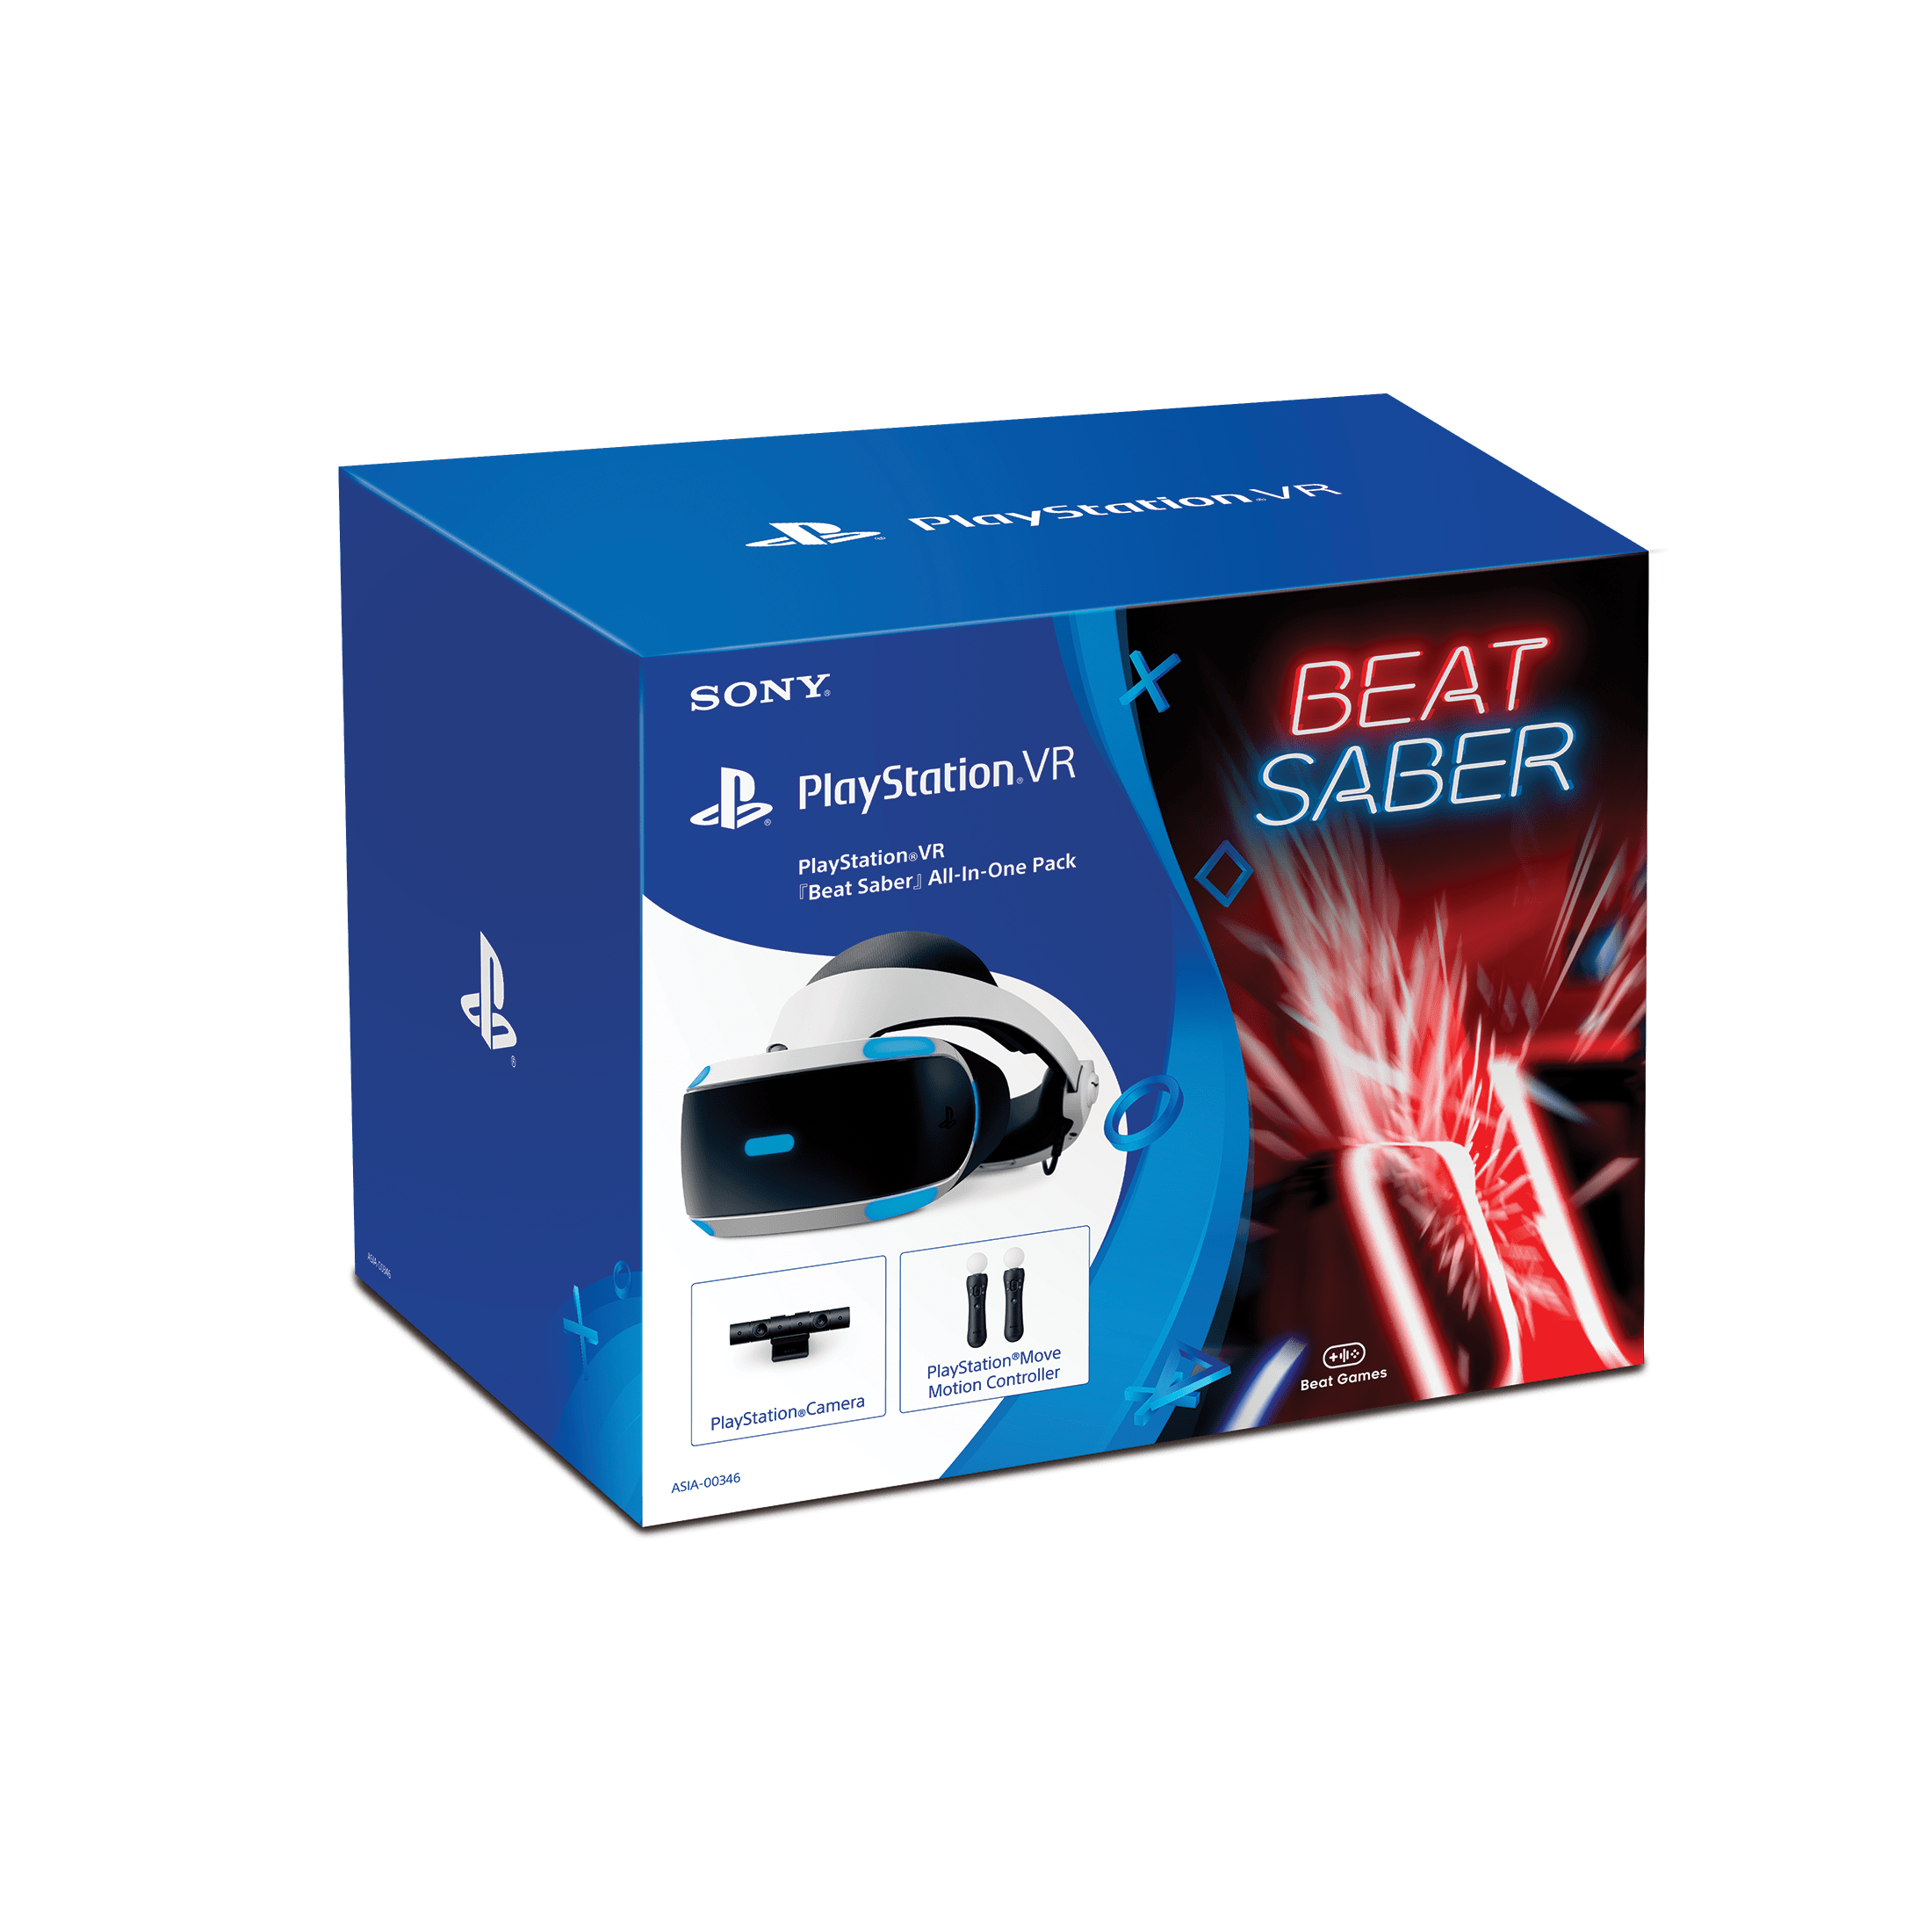 New PS VR Bundle Includes Beat Saber, Coming To Malaysia May 10th